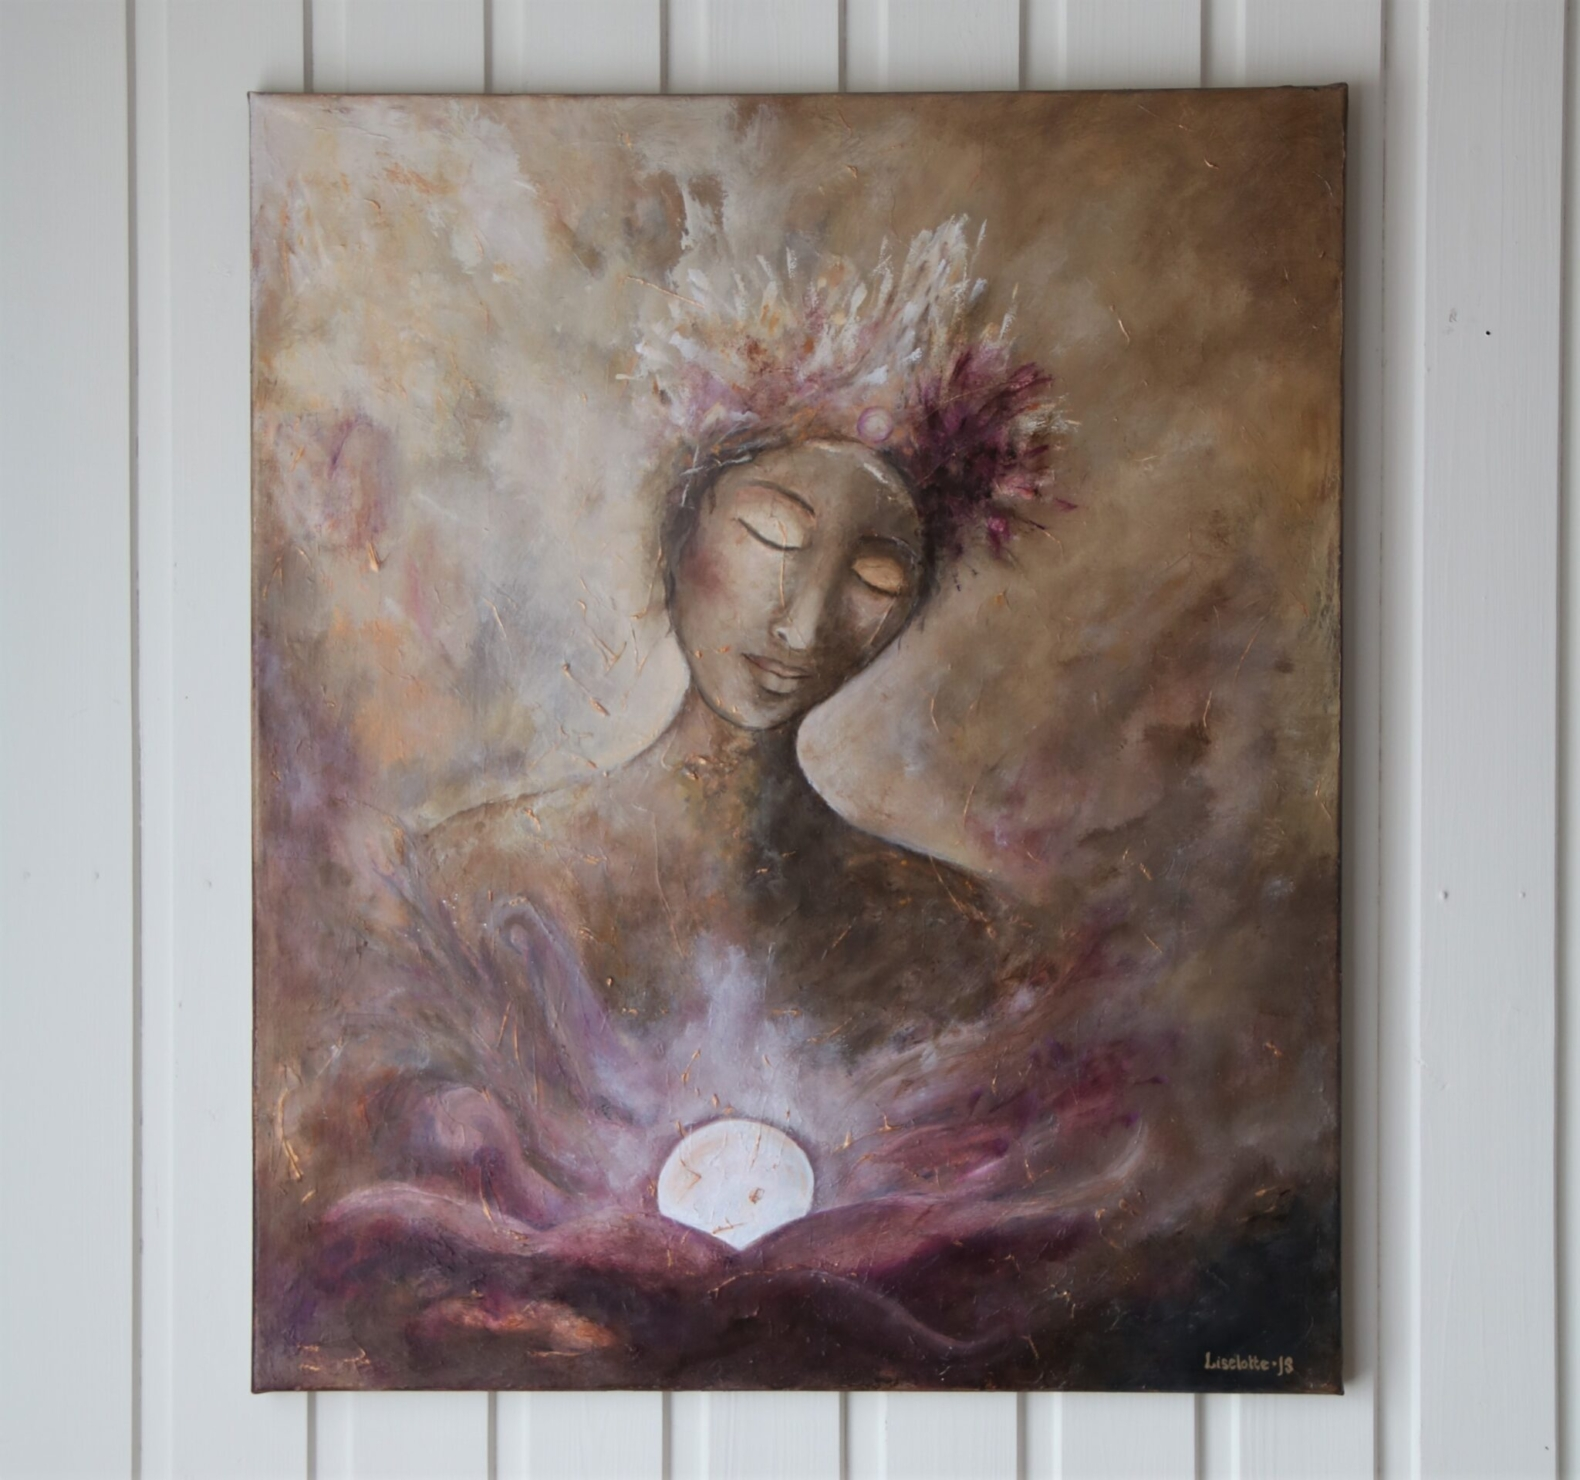 """""""THE PEARL KEEPER"""". Original acrylic artwork by Liselotte JS  The Pearl Keeper is dedicated to taking care of the white pearl and its energy in front of her. She is deeply anchored in herself and listens humbly to its wisdom and secrets. The feminine in the painting is conscious about the essence of life and the new beginnings that are about to shine through. She is both the guardian and a participant of the process at the same time.  INFORMATION Size: 65 x 55 cm, deep 22 mm. Canvas: Painted with acryl on the highest quality of 100 % linen, stretched on the back on wooden frames. Painted edges and varnished surface for protection of the color.  Shipping: The painting is located in Västervik/Sweden, but can be shipped worldwide, with costs added upon the price. Delivery time depends on destination, but about 2-4 weeks. The painting is delivered with a certificate of authenticity as proof of the original artwork.  Price: 4700 SEK (445 €)  Contact: liselotte@sunoya.com"""